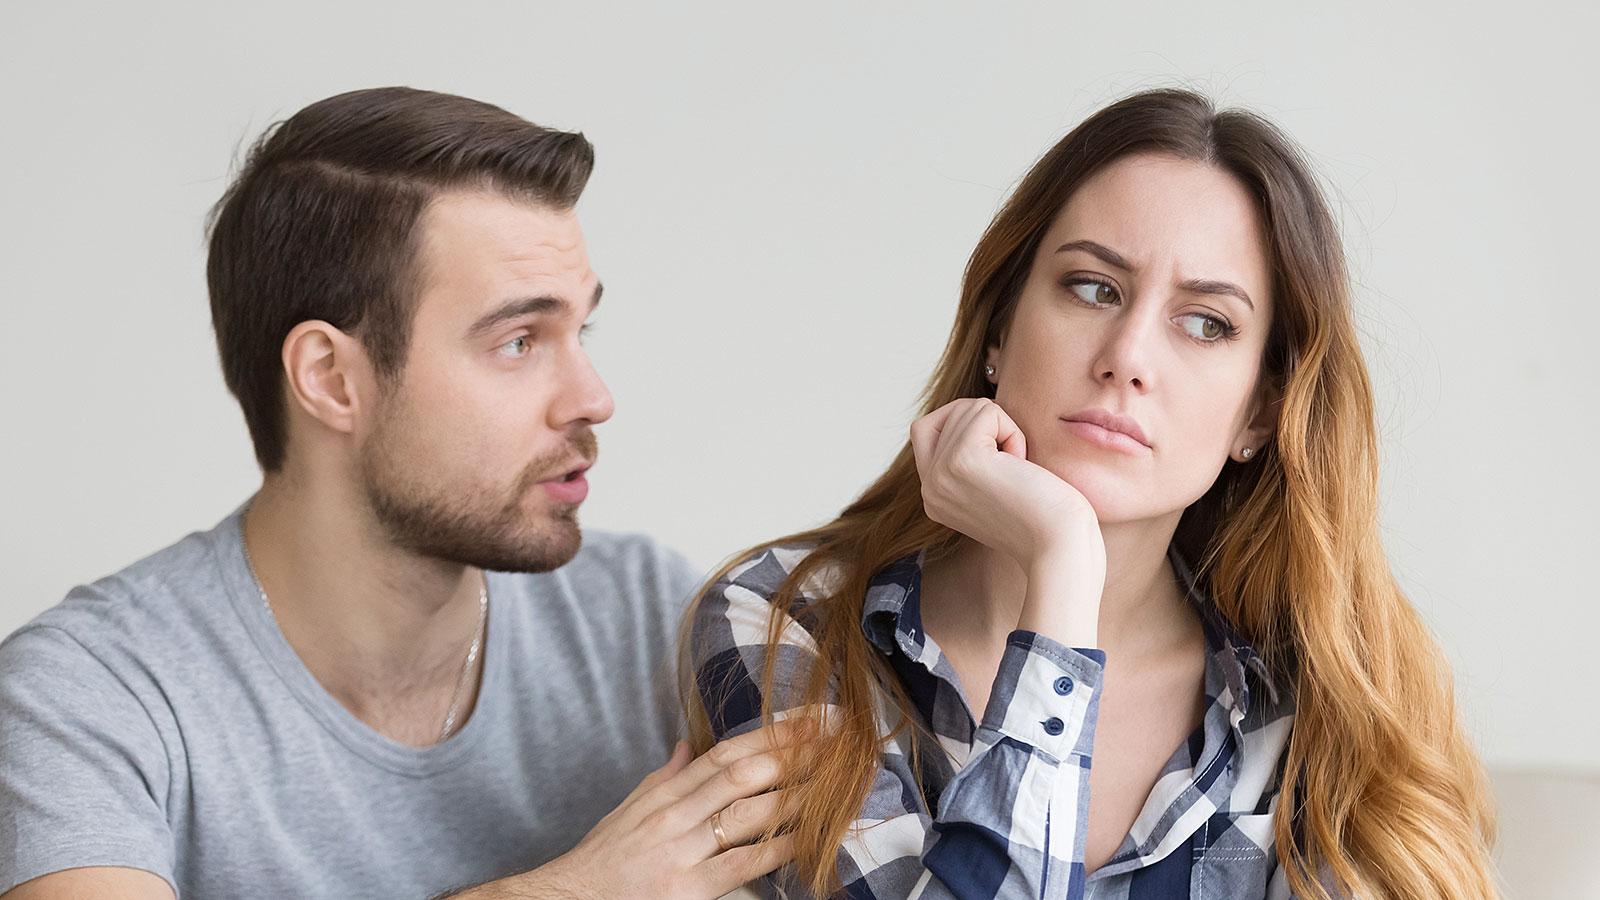 This 4-second mental reset will improve your relationships and business